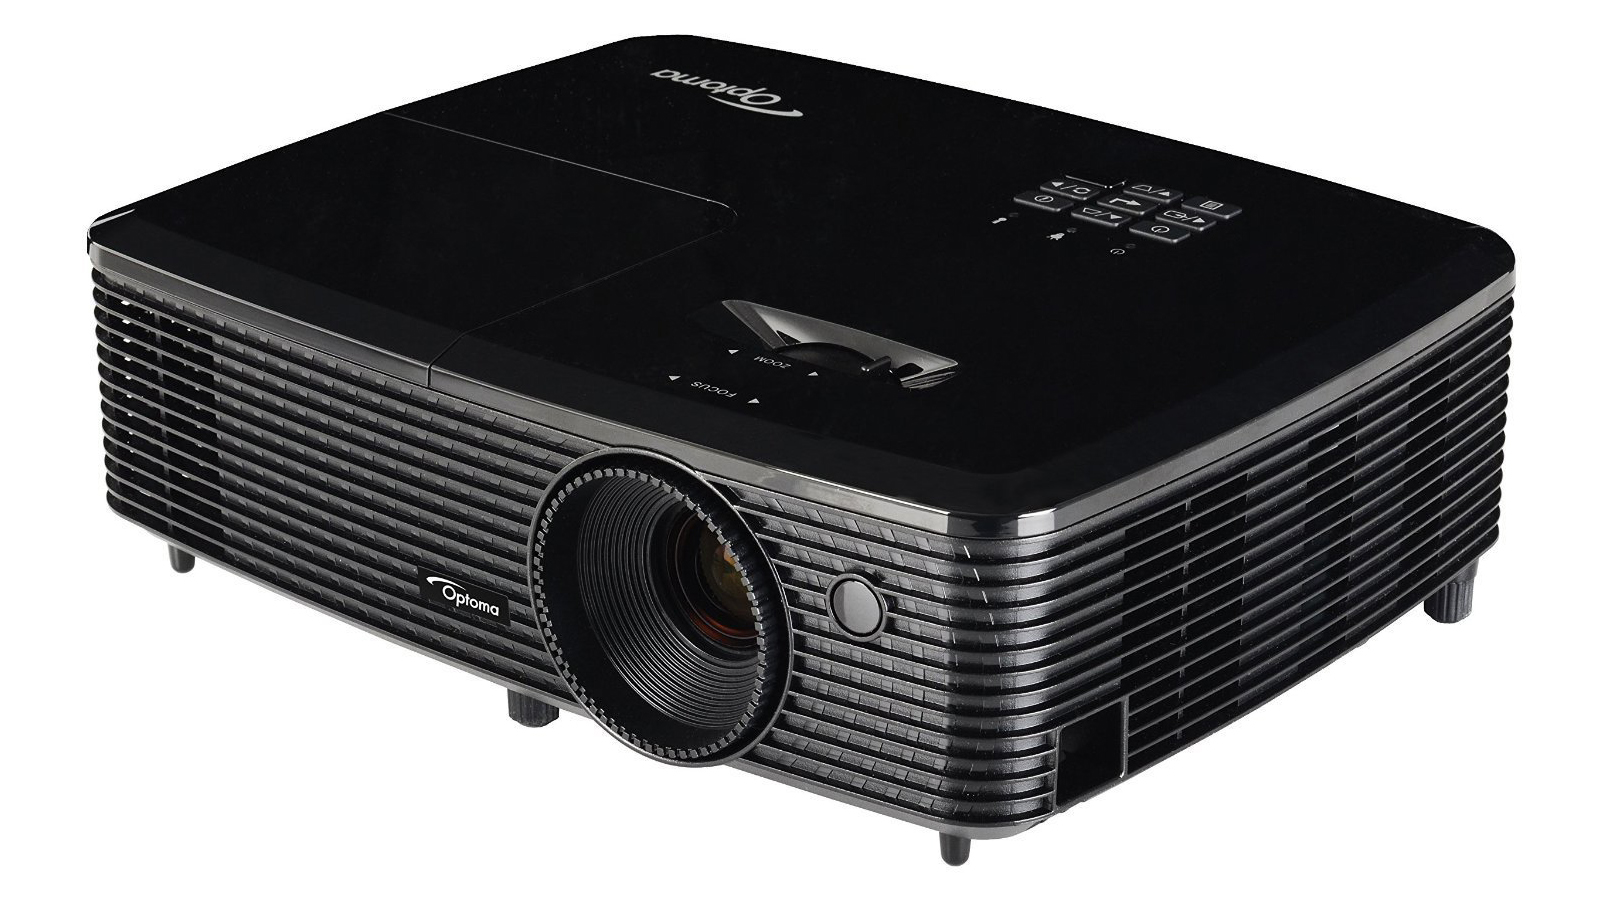 7oMQVnmnGJDcjP96jvqAZL - The best projector prices and sales in February 2019